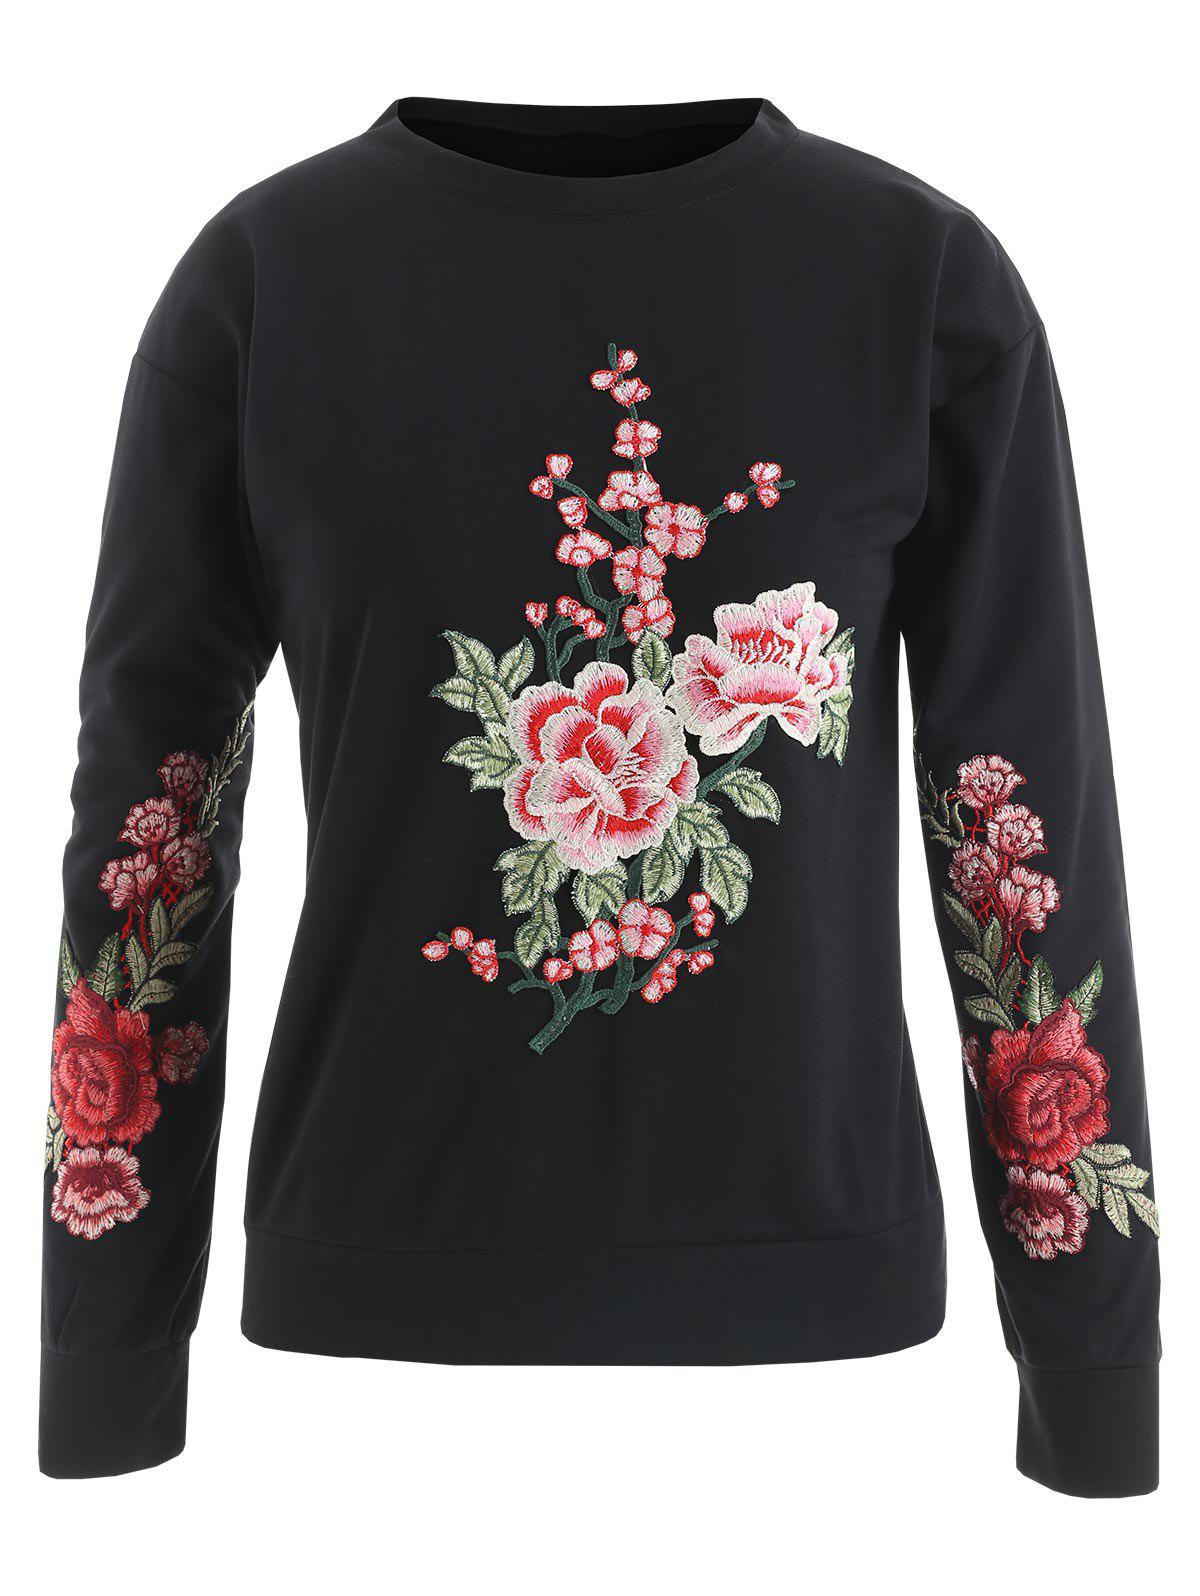 Flower Embroidered Sweatshirt - BLACK M